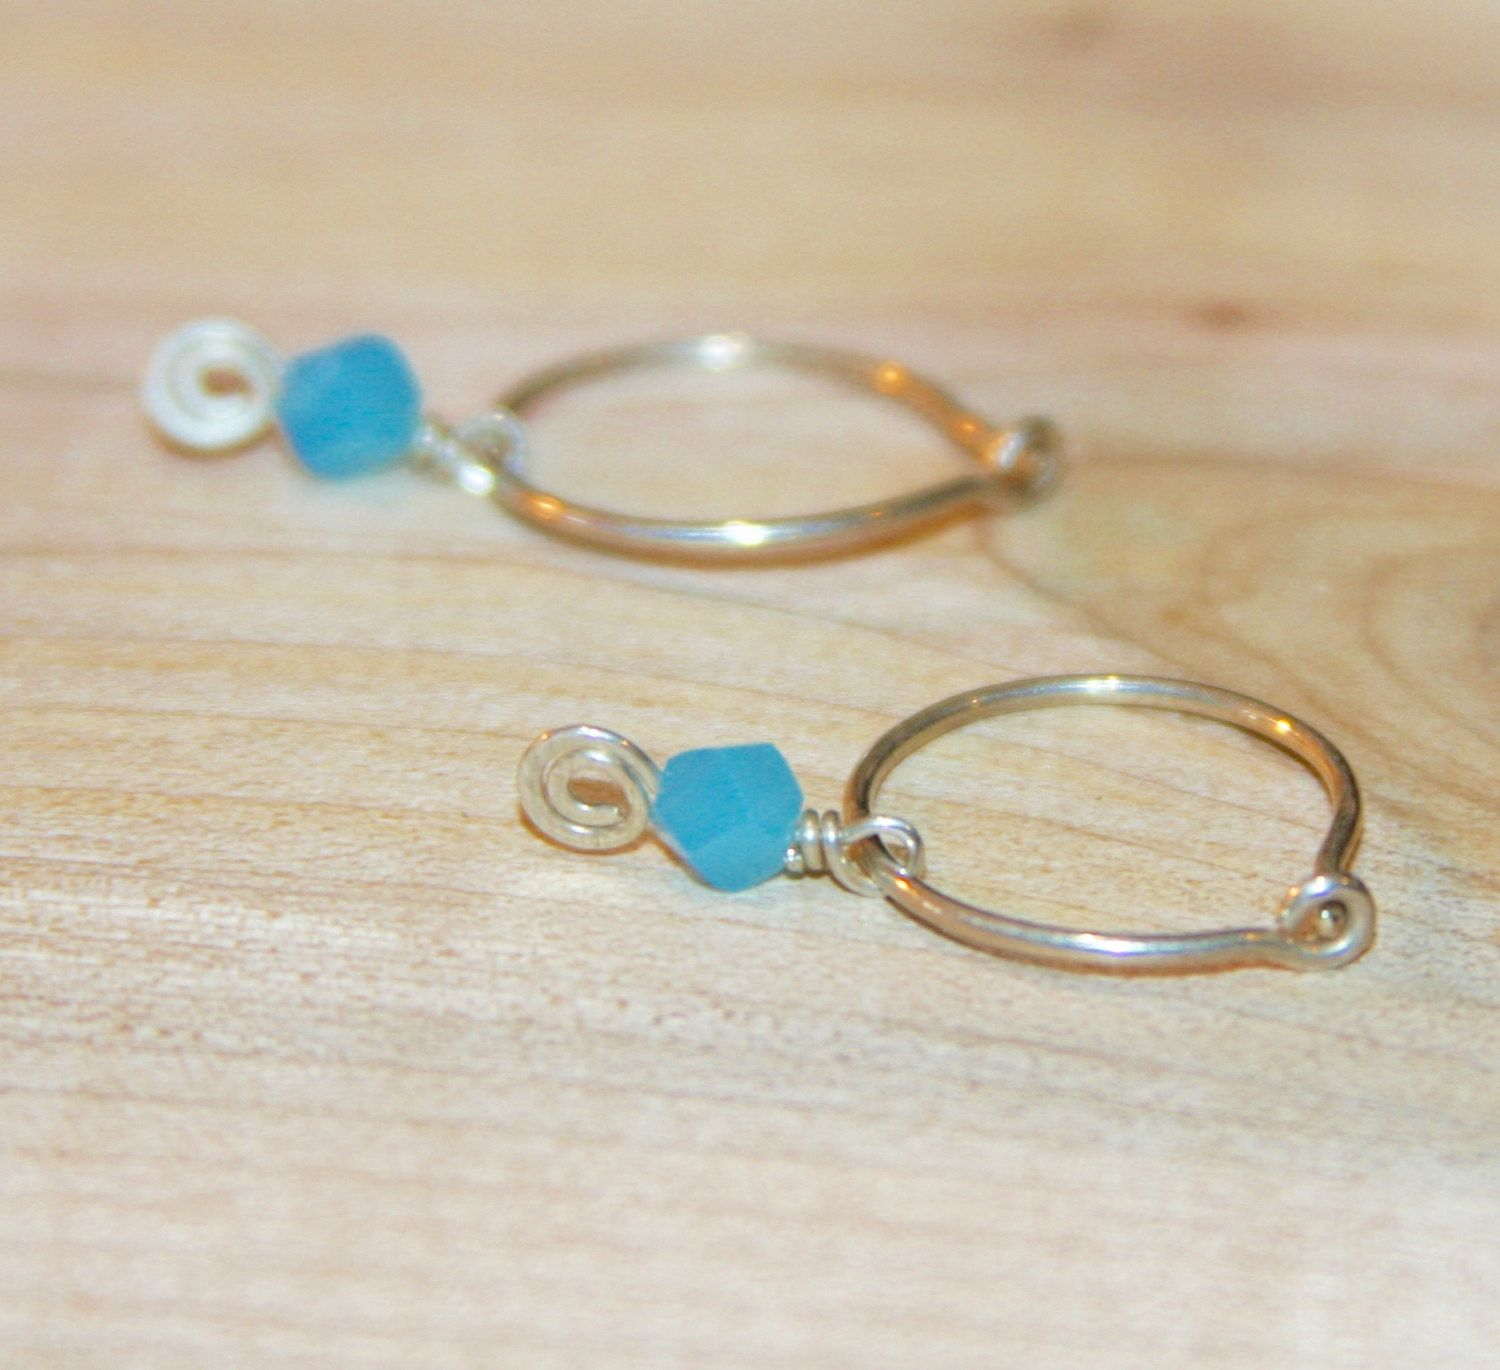 Small Blue Earrings Small Silver Earrings Small Hoop Earrings Small  Cartilage Hoop Earrings 14k Gold Filled Hoops Sterling Silver Hoops